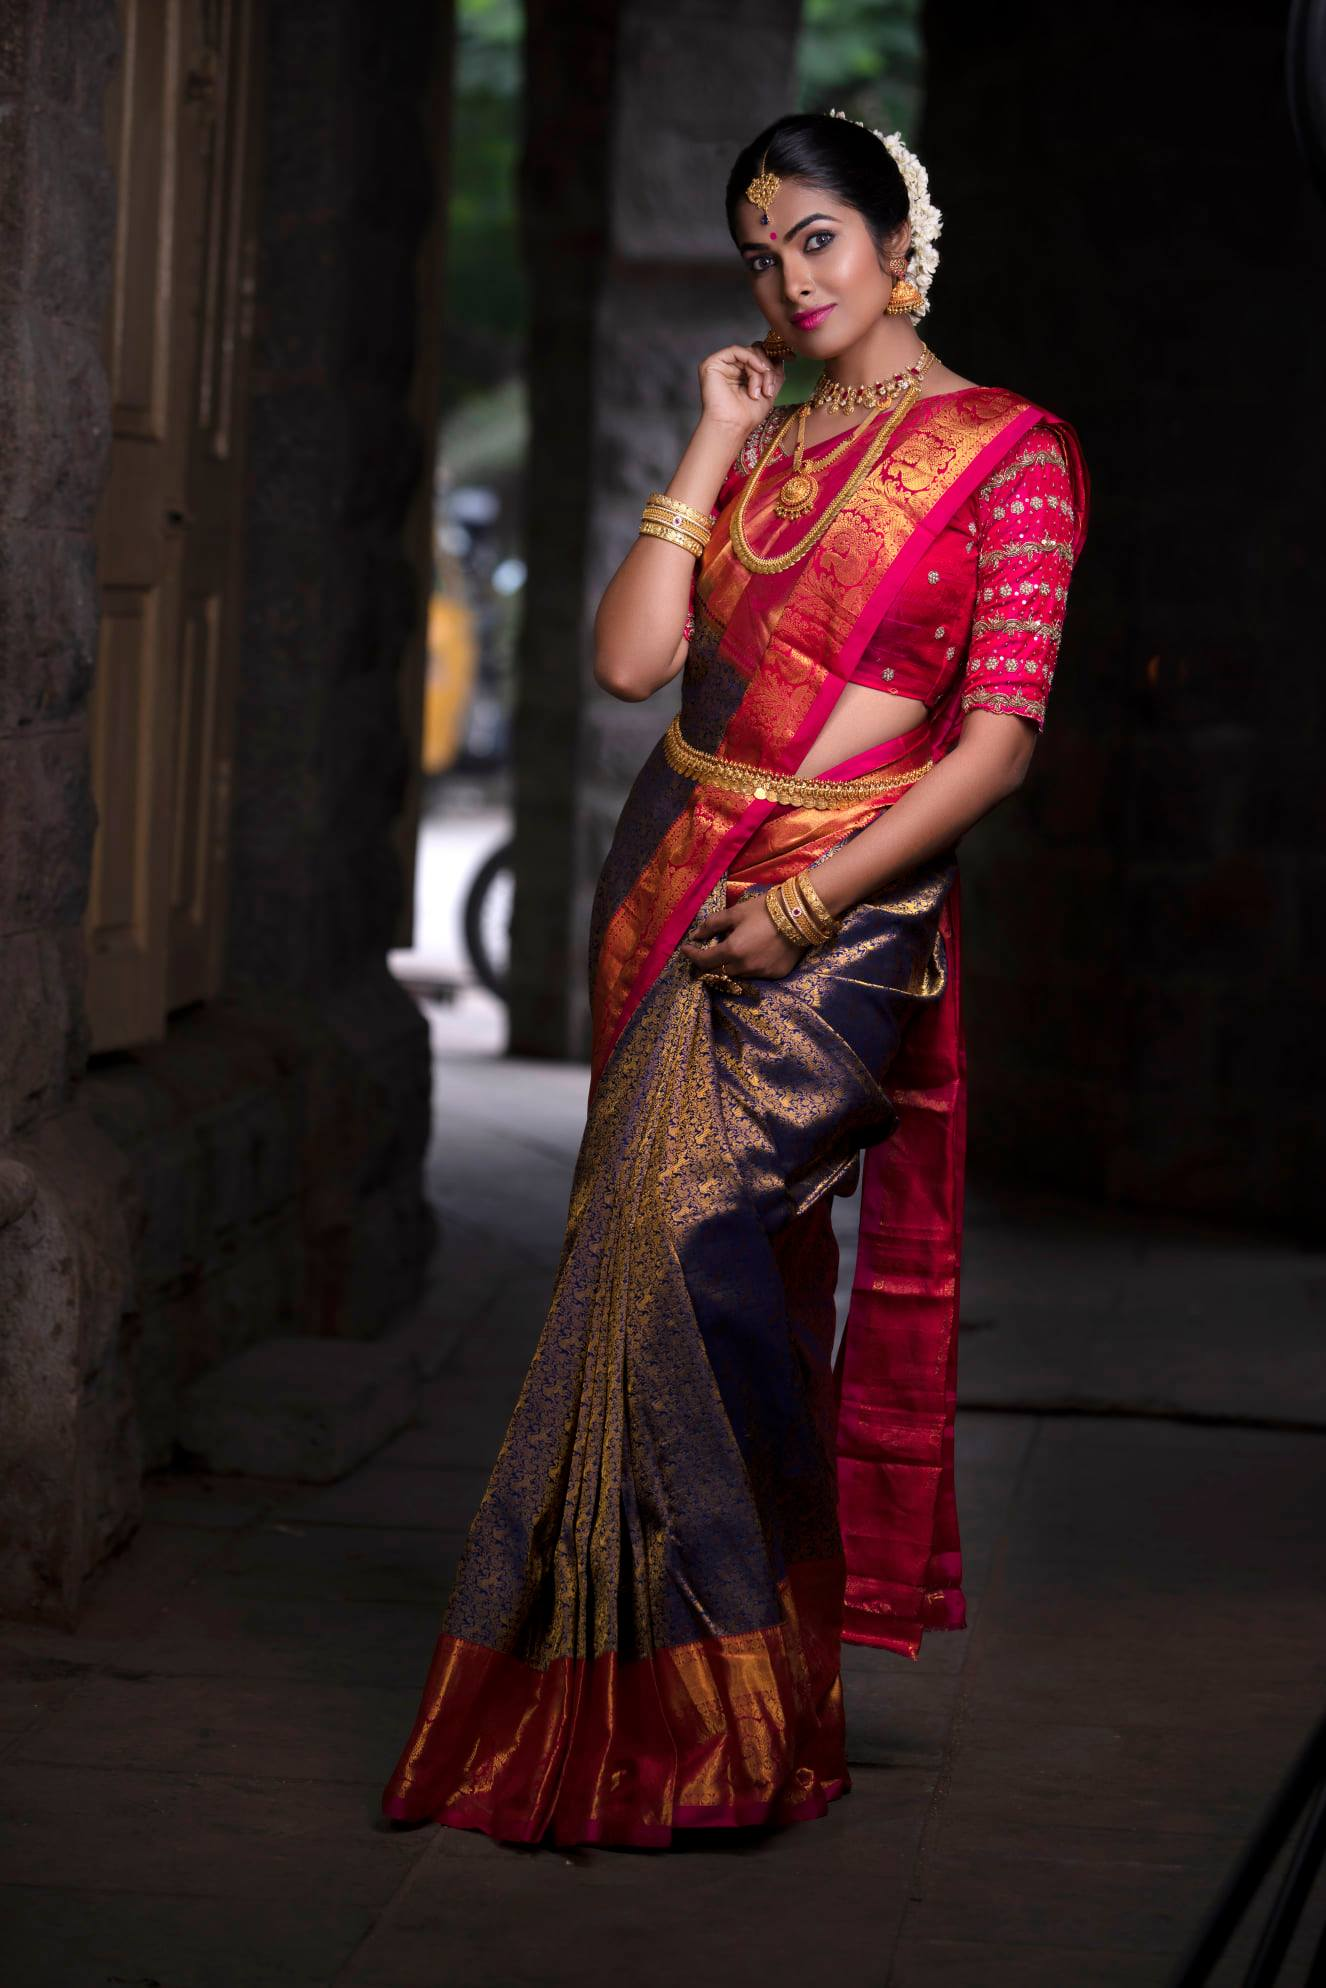 Bright and bold. This Kanchipuram silk saree in an enchanting shade of orange is perfect for the upcoming wedding season. For orders and prices - Please whatsapp  at 7995481918. Inframe - Divi Vadthya Photography - JKM Photography Jewellery  - siri jwellery Makeup - Rajmakeover   ladies fancy saree   golden designer blouse   indian sarees online   2020-12-05